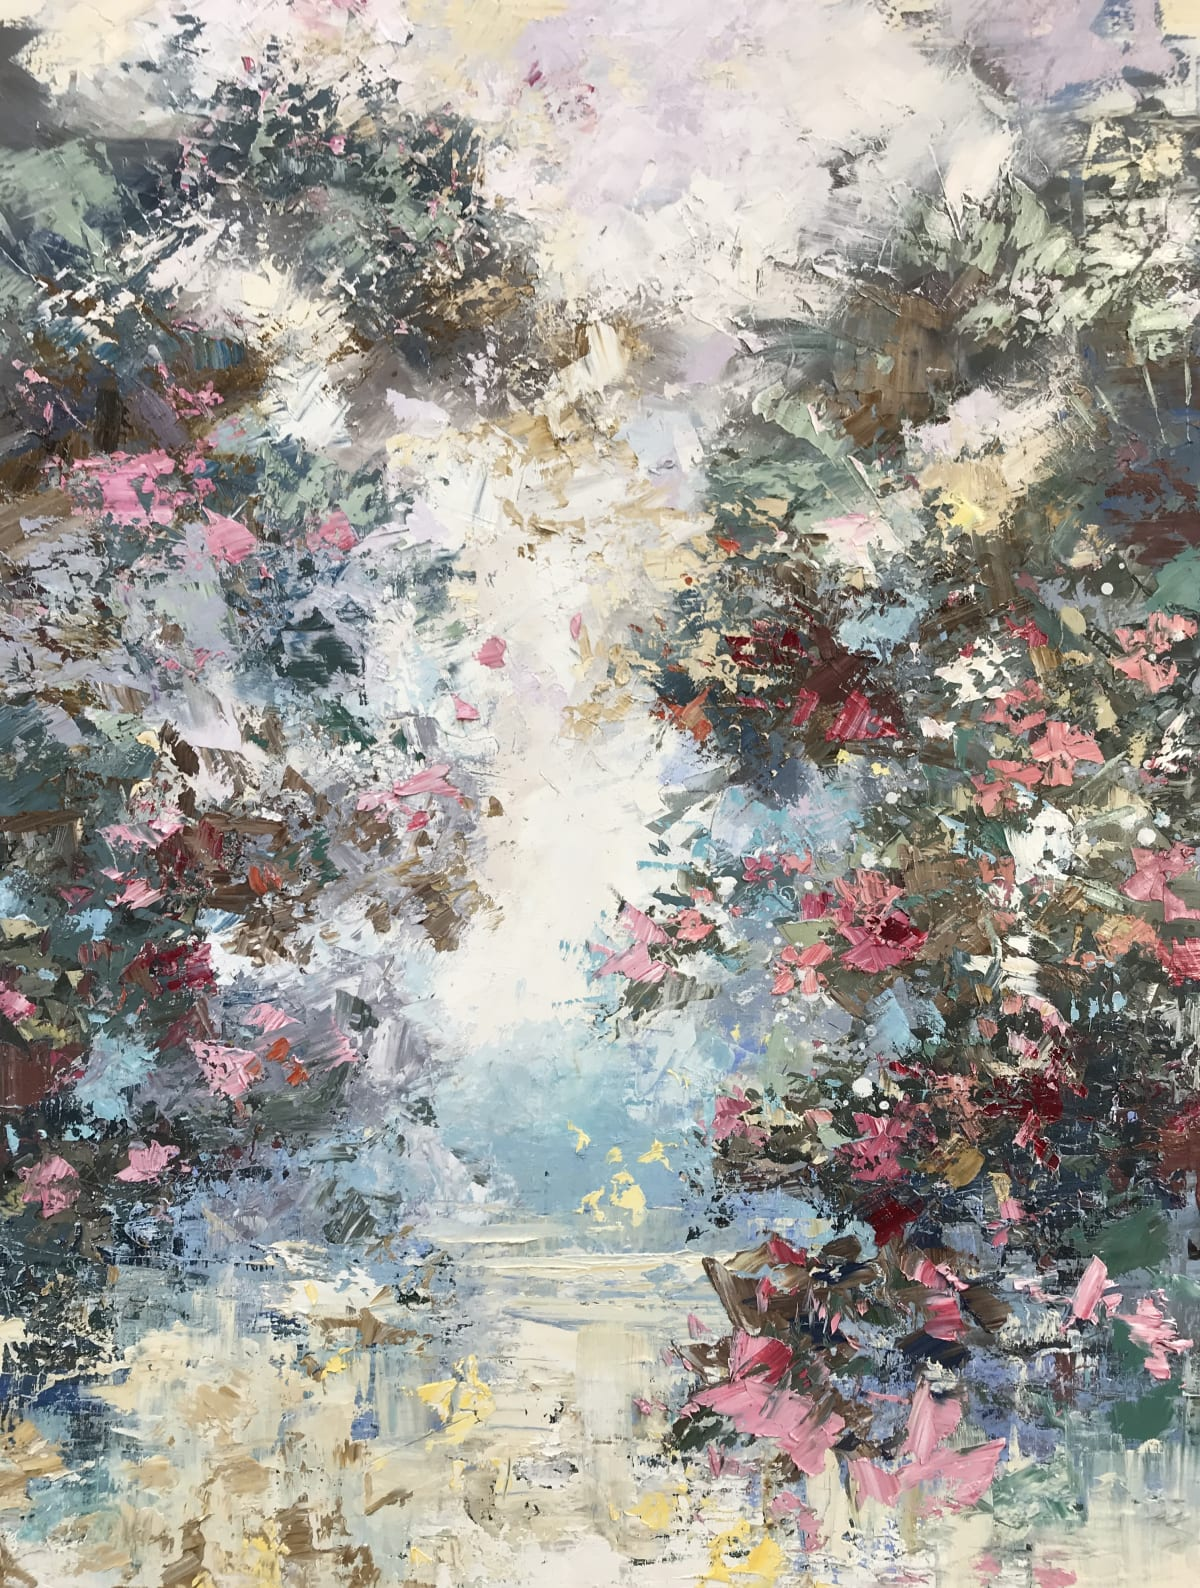 Paul Treasure SUNLIGHT AND ROSE RED Oil on canvas 63 x 47 in. 160.02 x 119.38 cm